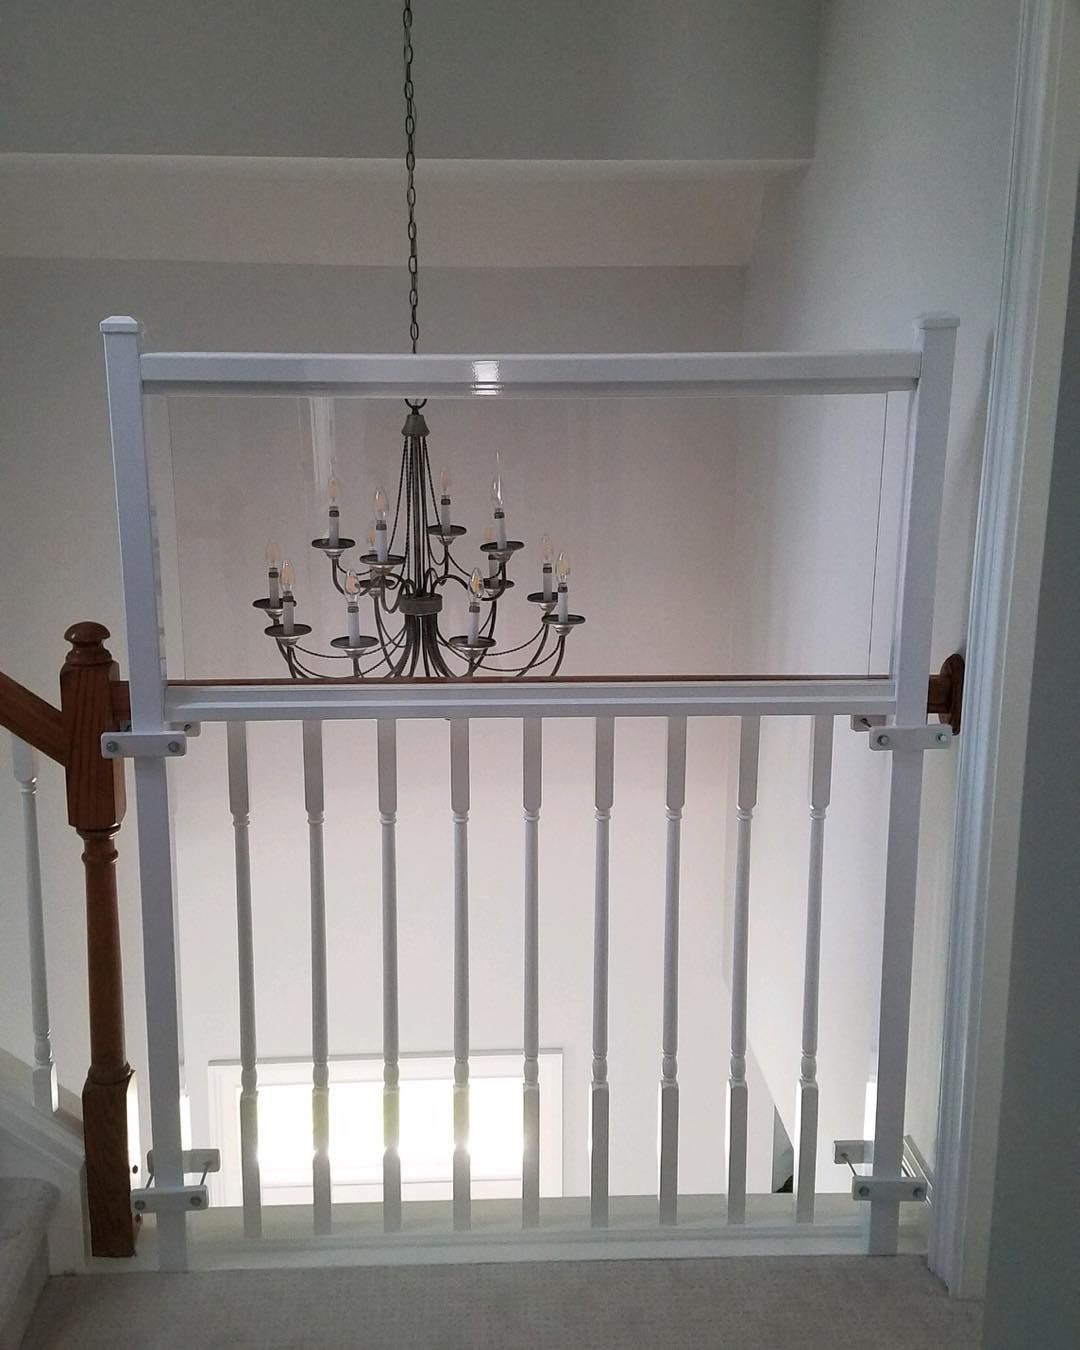 baby Proofing in 2020   Banisters, Baby gates, Baby ...